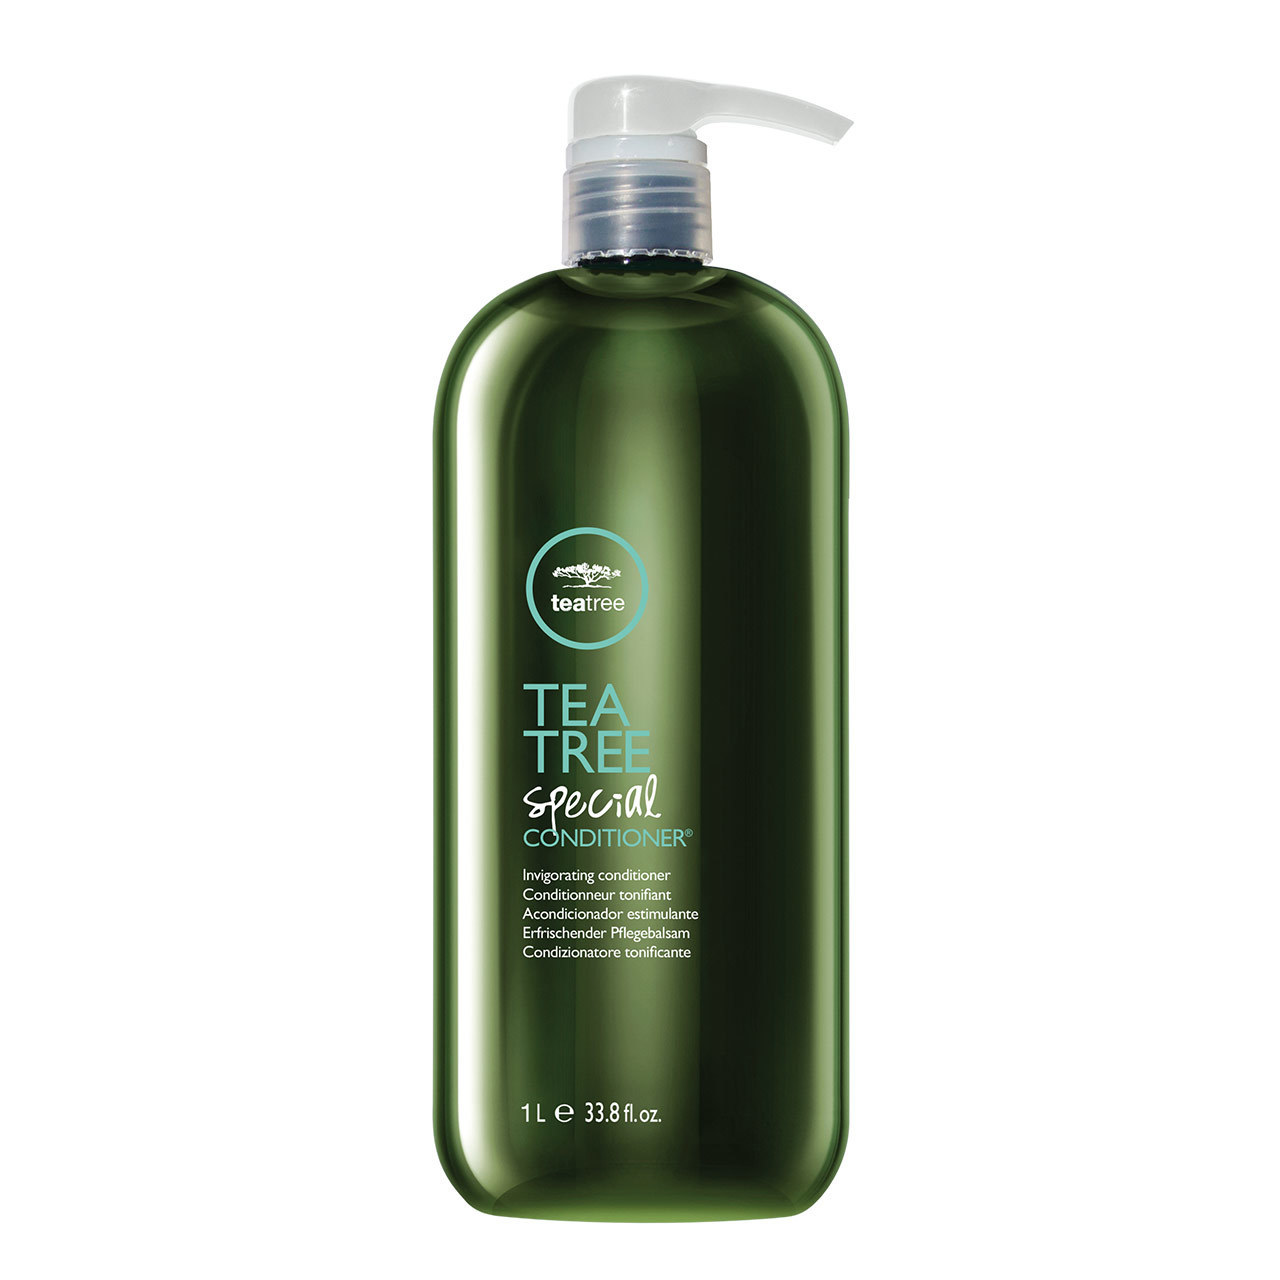 Tea tree special conditionerl